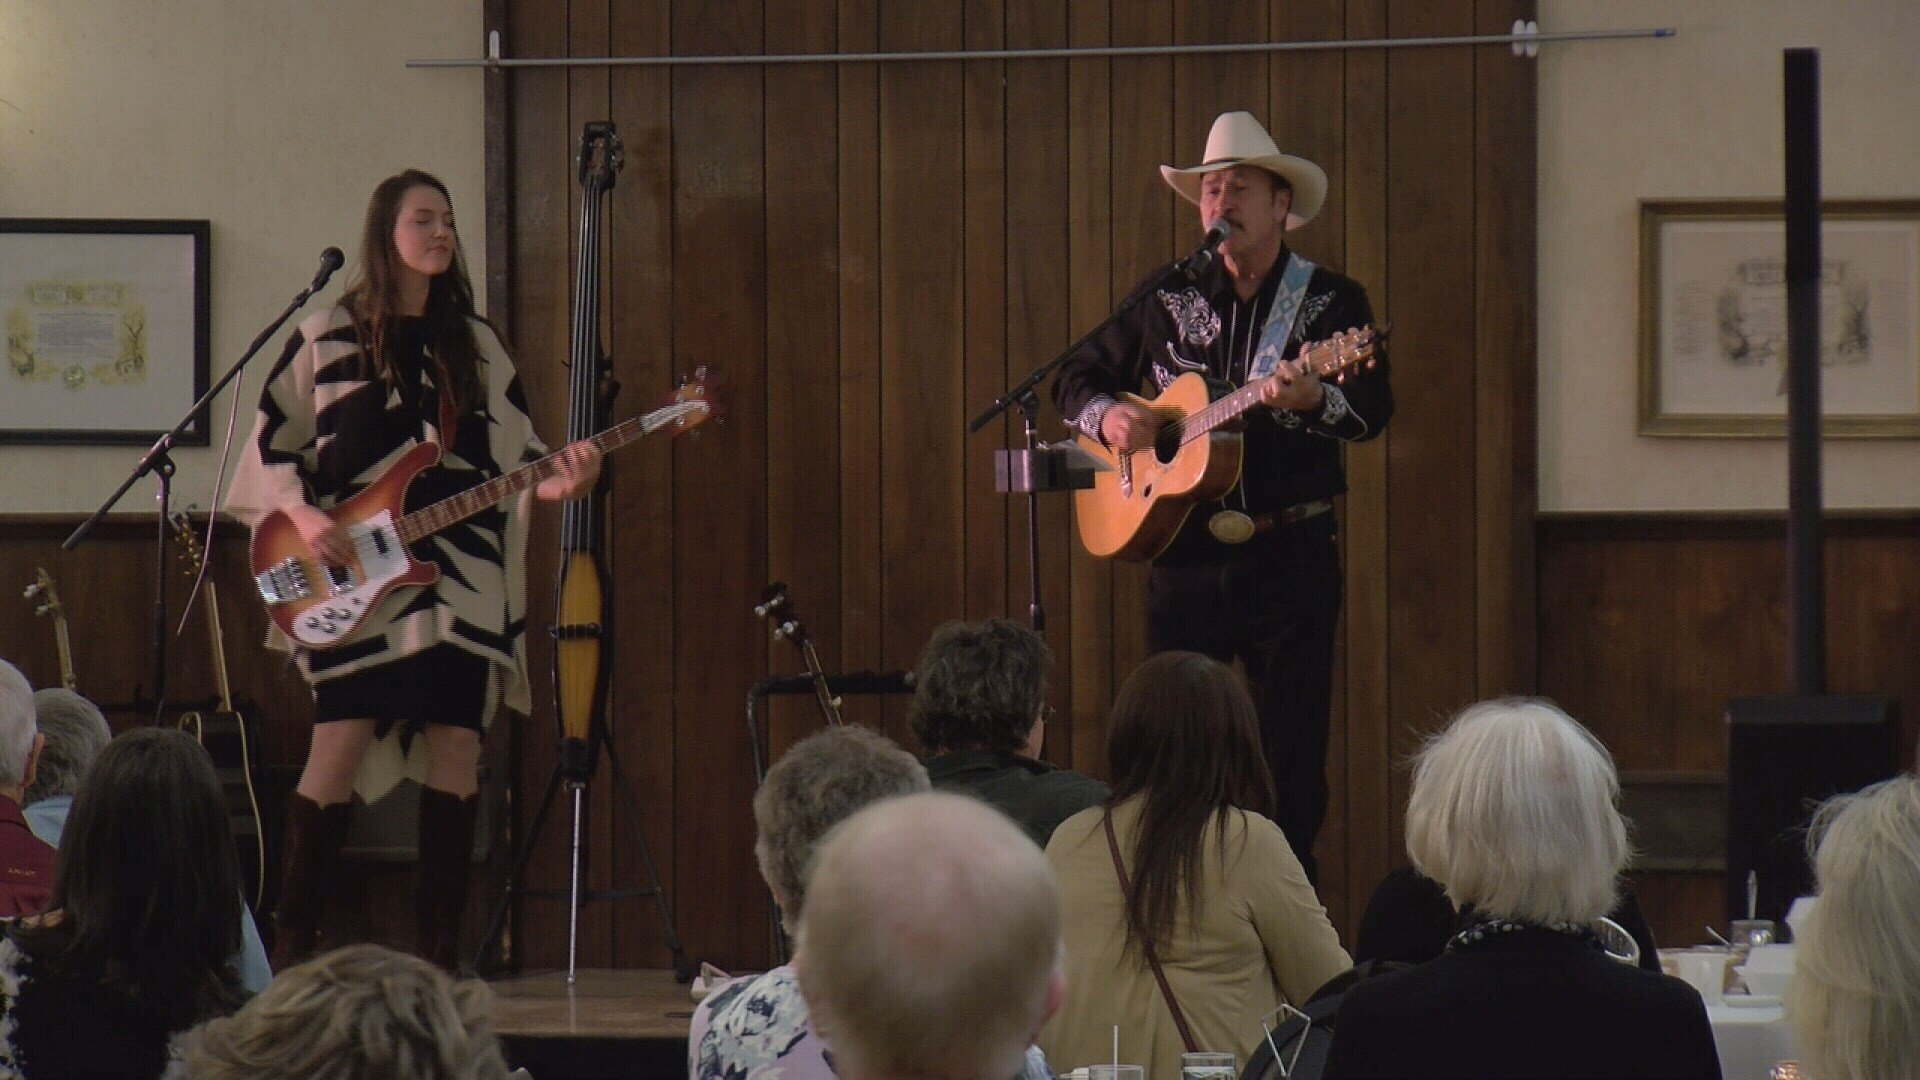 Rob Quist and his daughter Halladay performing at the Elks Lodge in Billings.